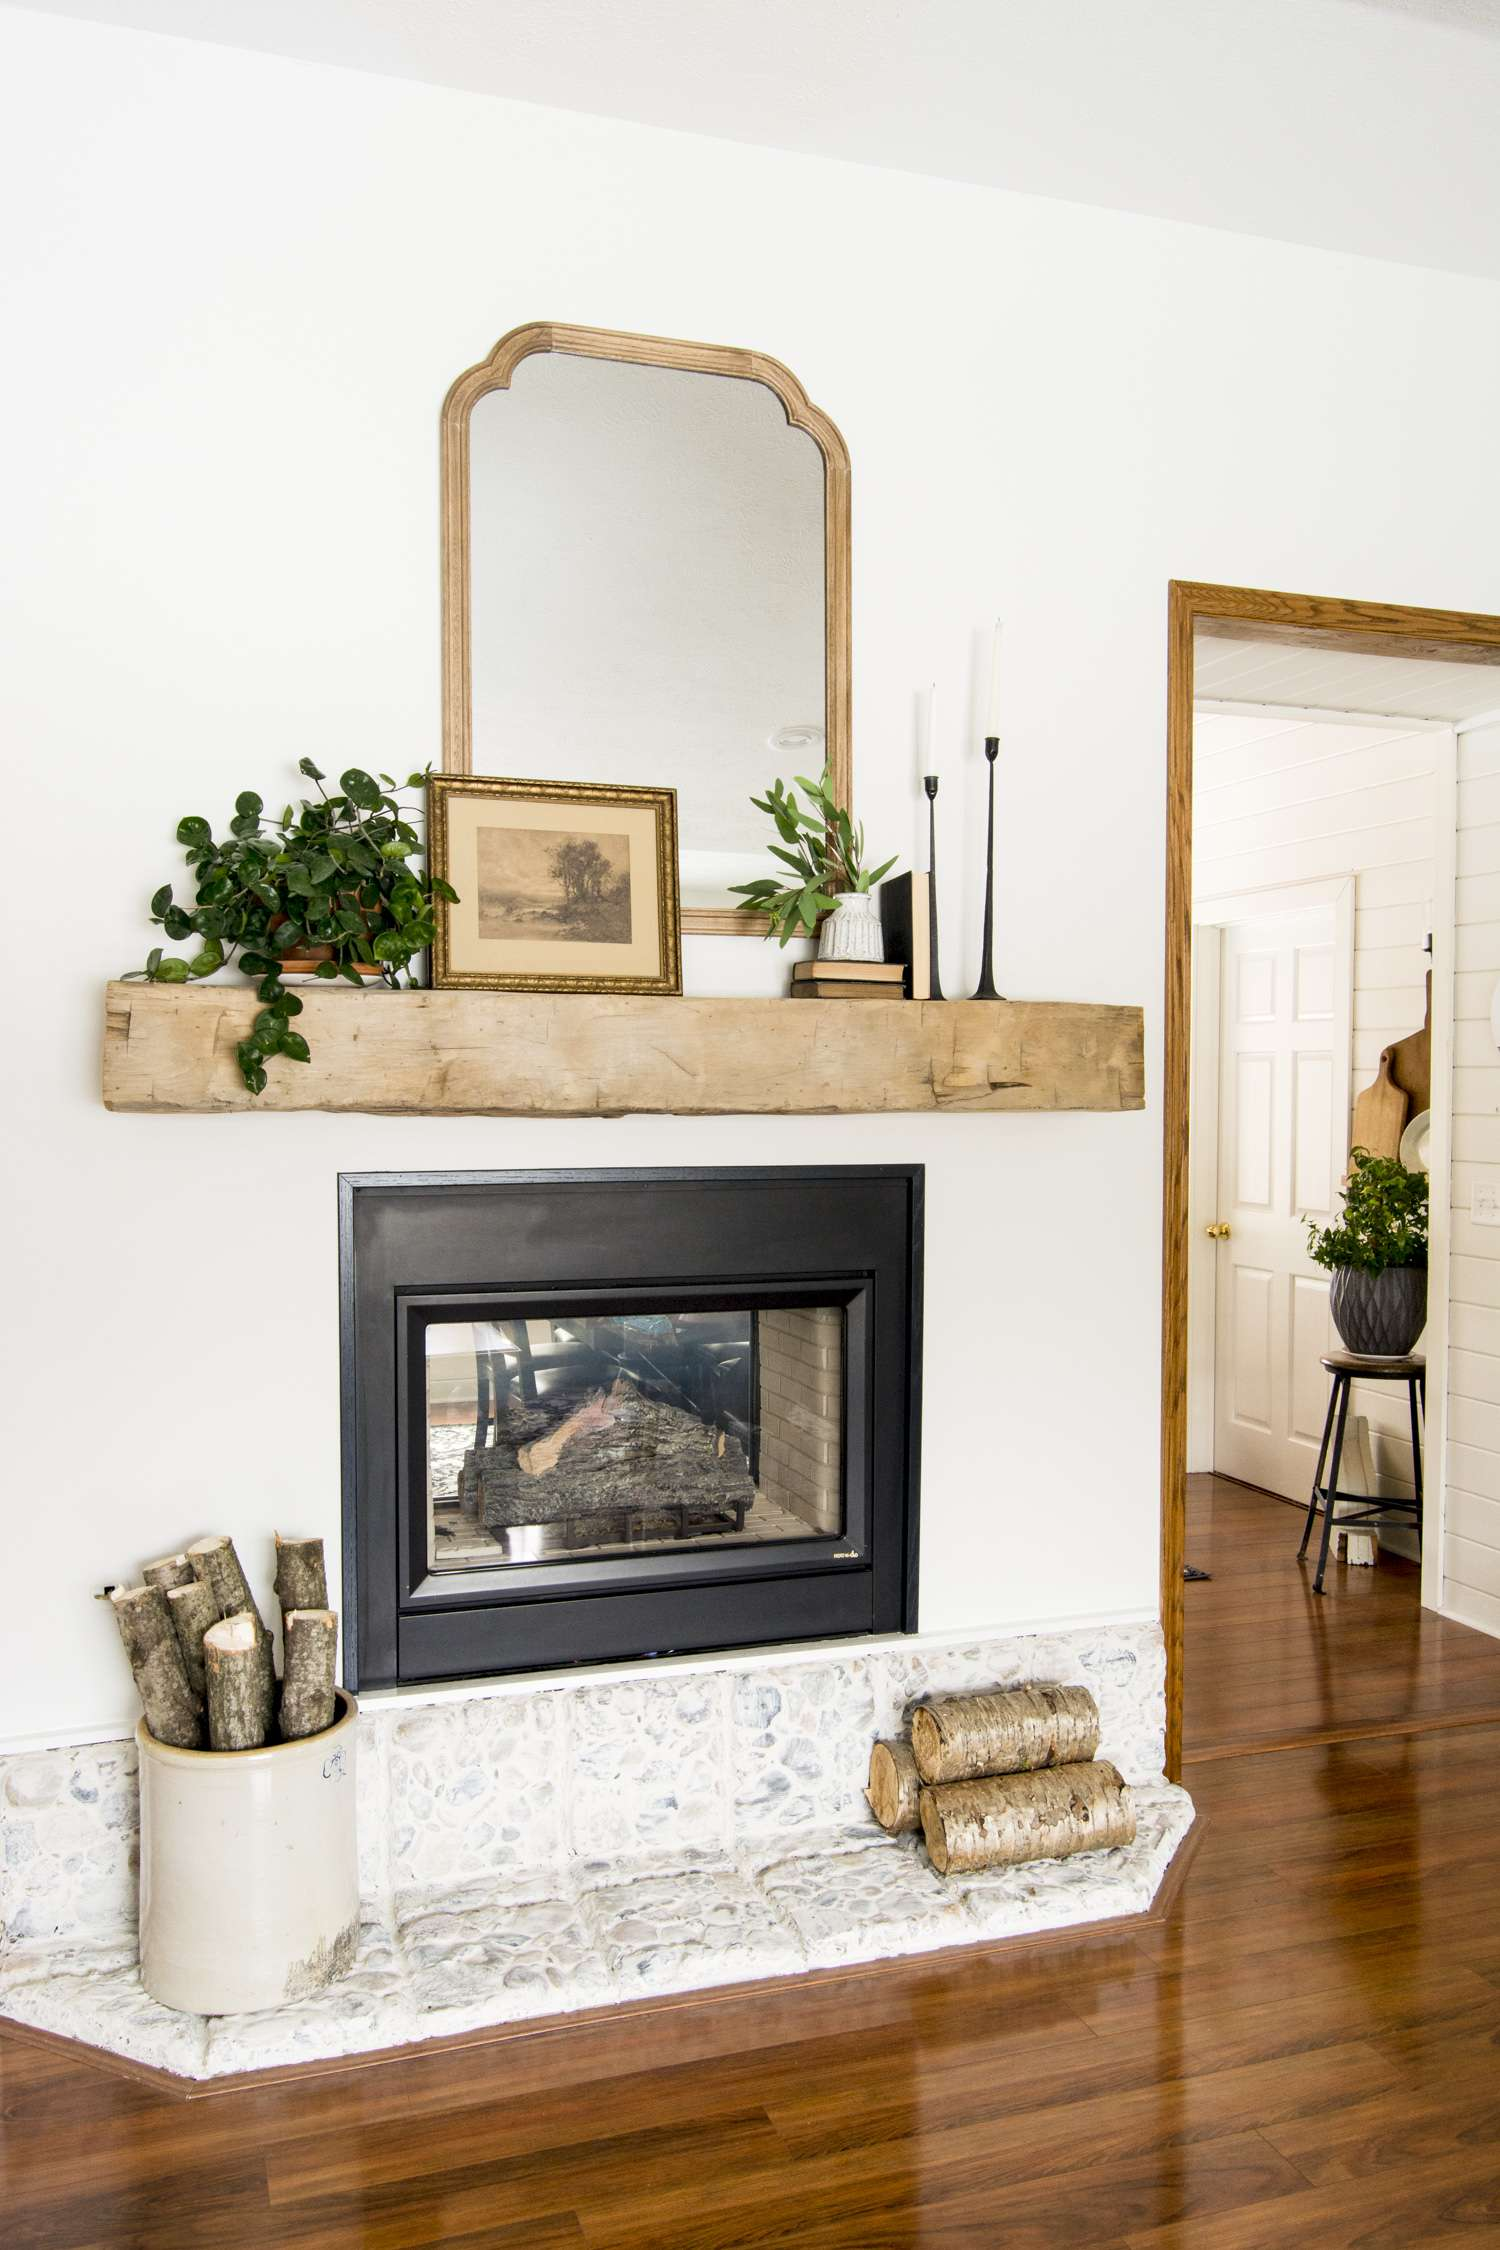 Modern farmhouse barn beam mantel decor.